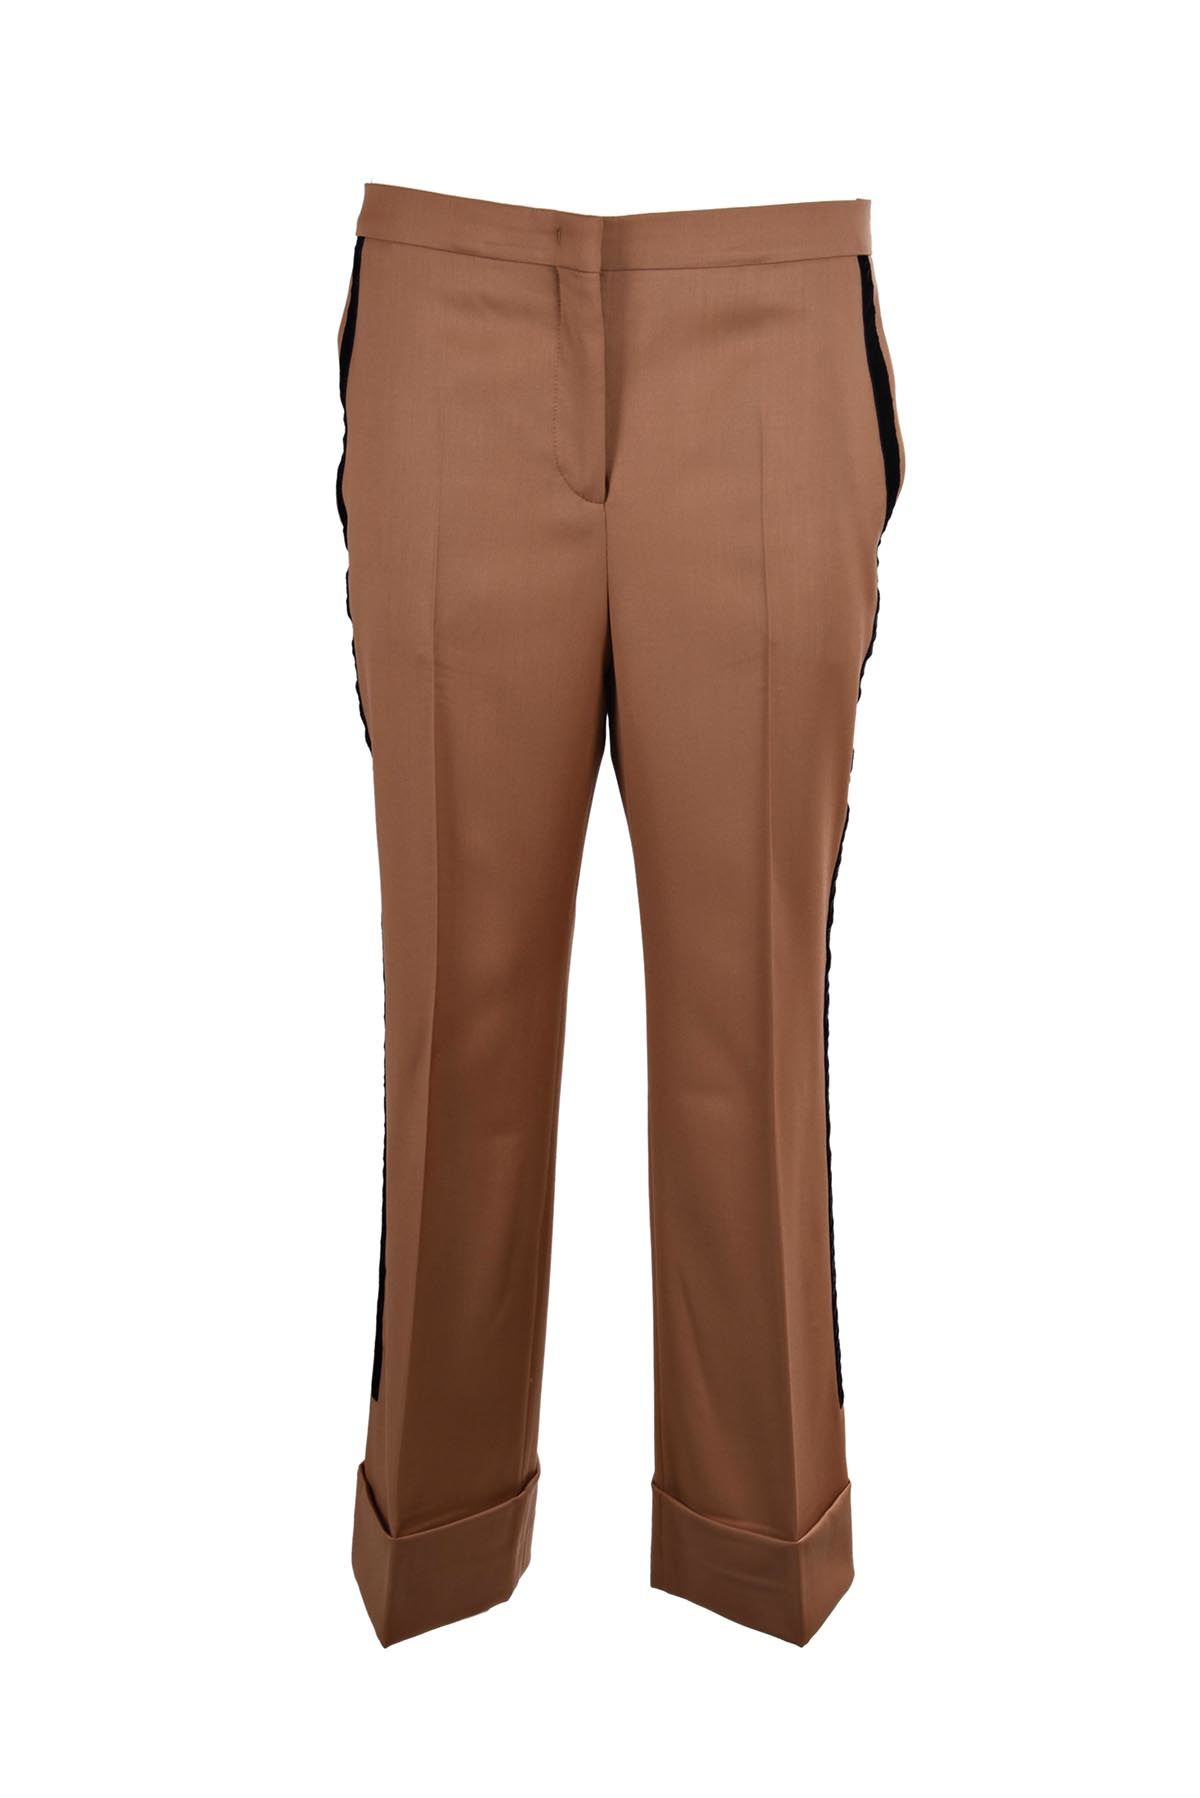 N.21 Bootcut Tailored Trousers